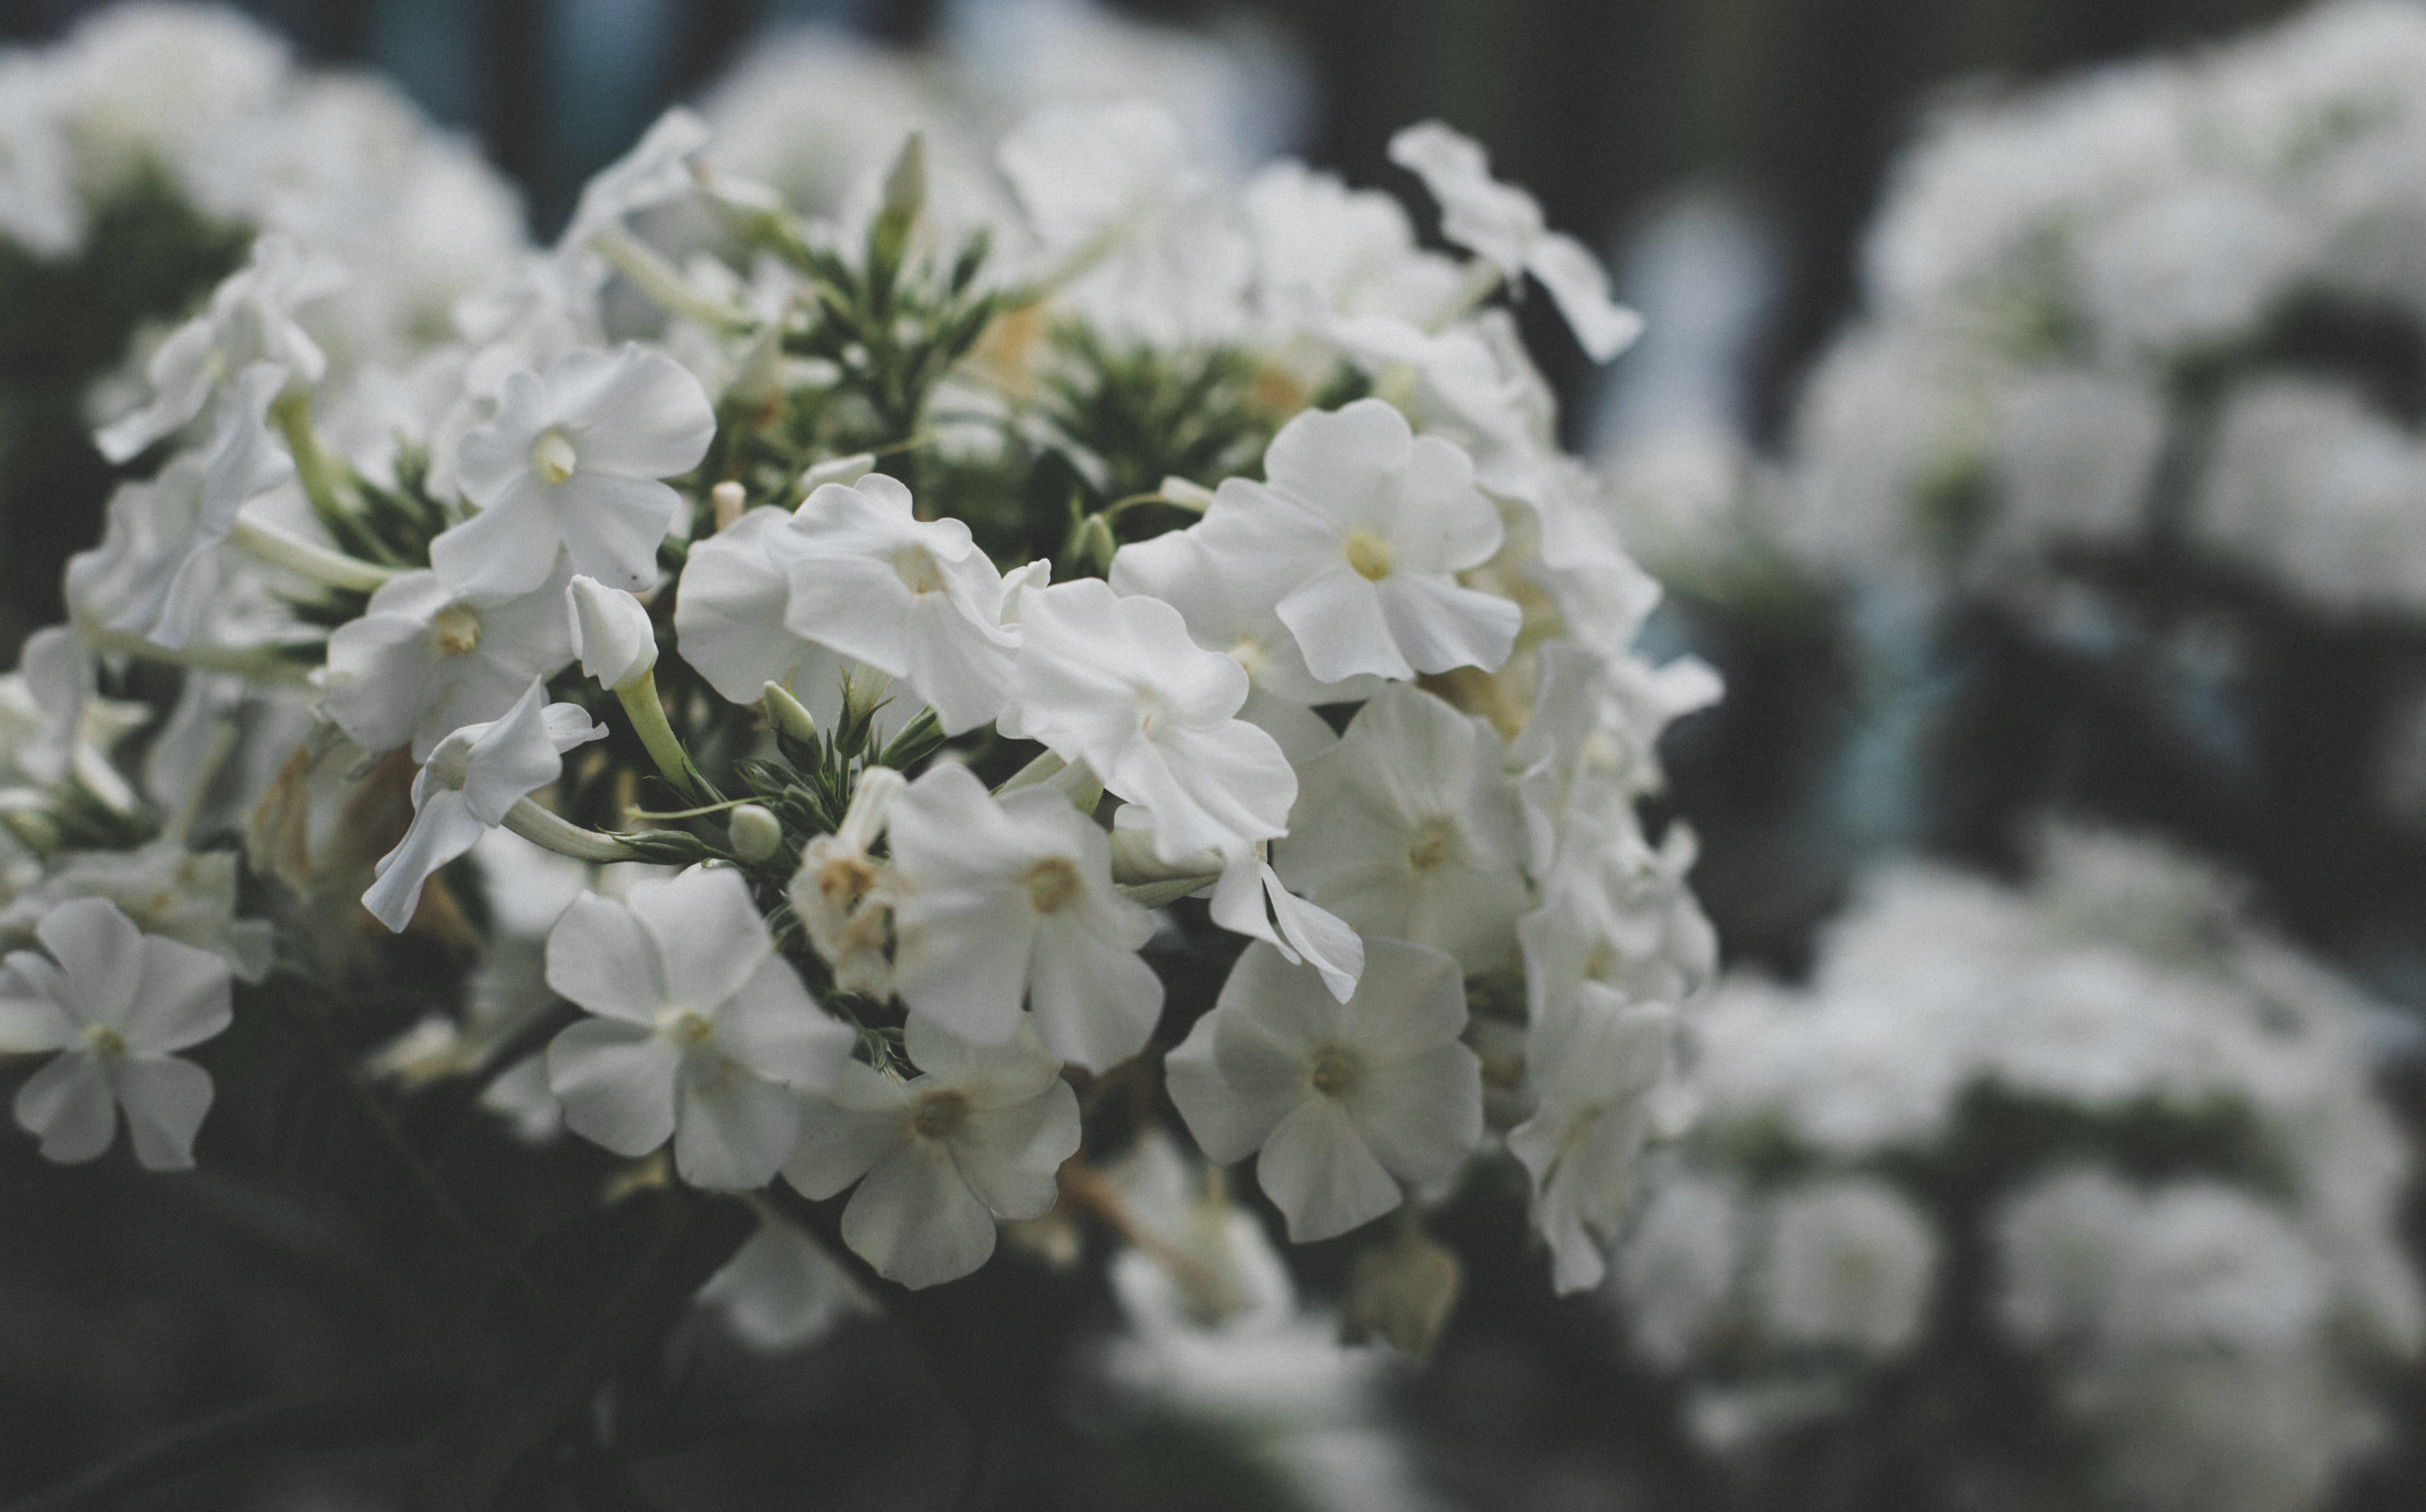 White Cluster Flowers Selective Focus Photography